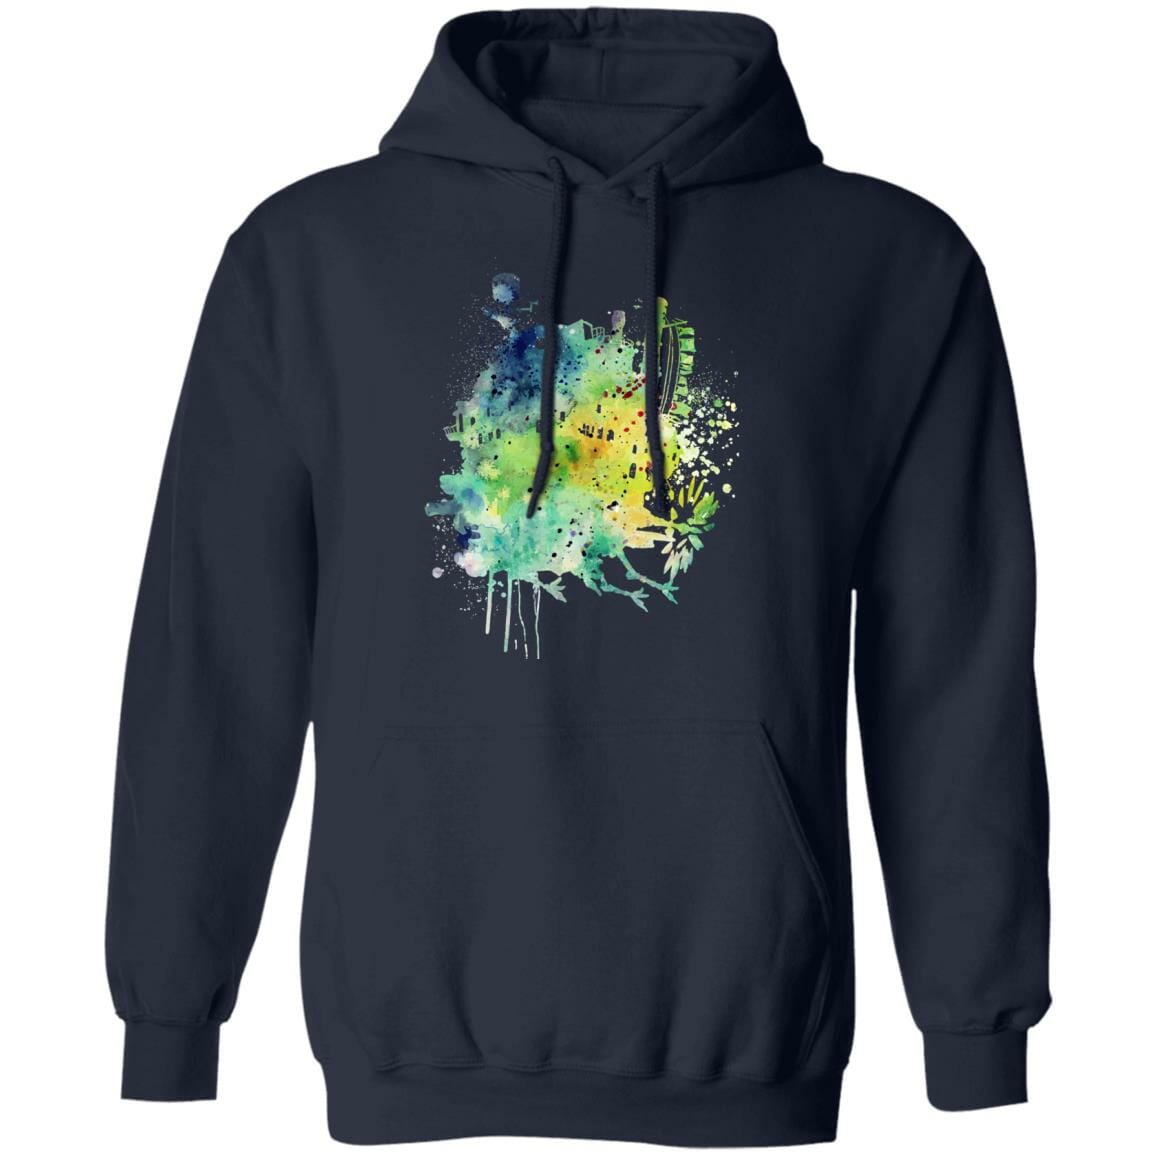 Howl's Moving Castle Colorful Castle Hoodie